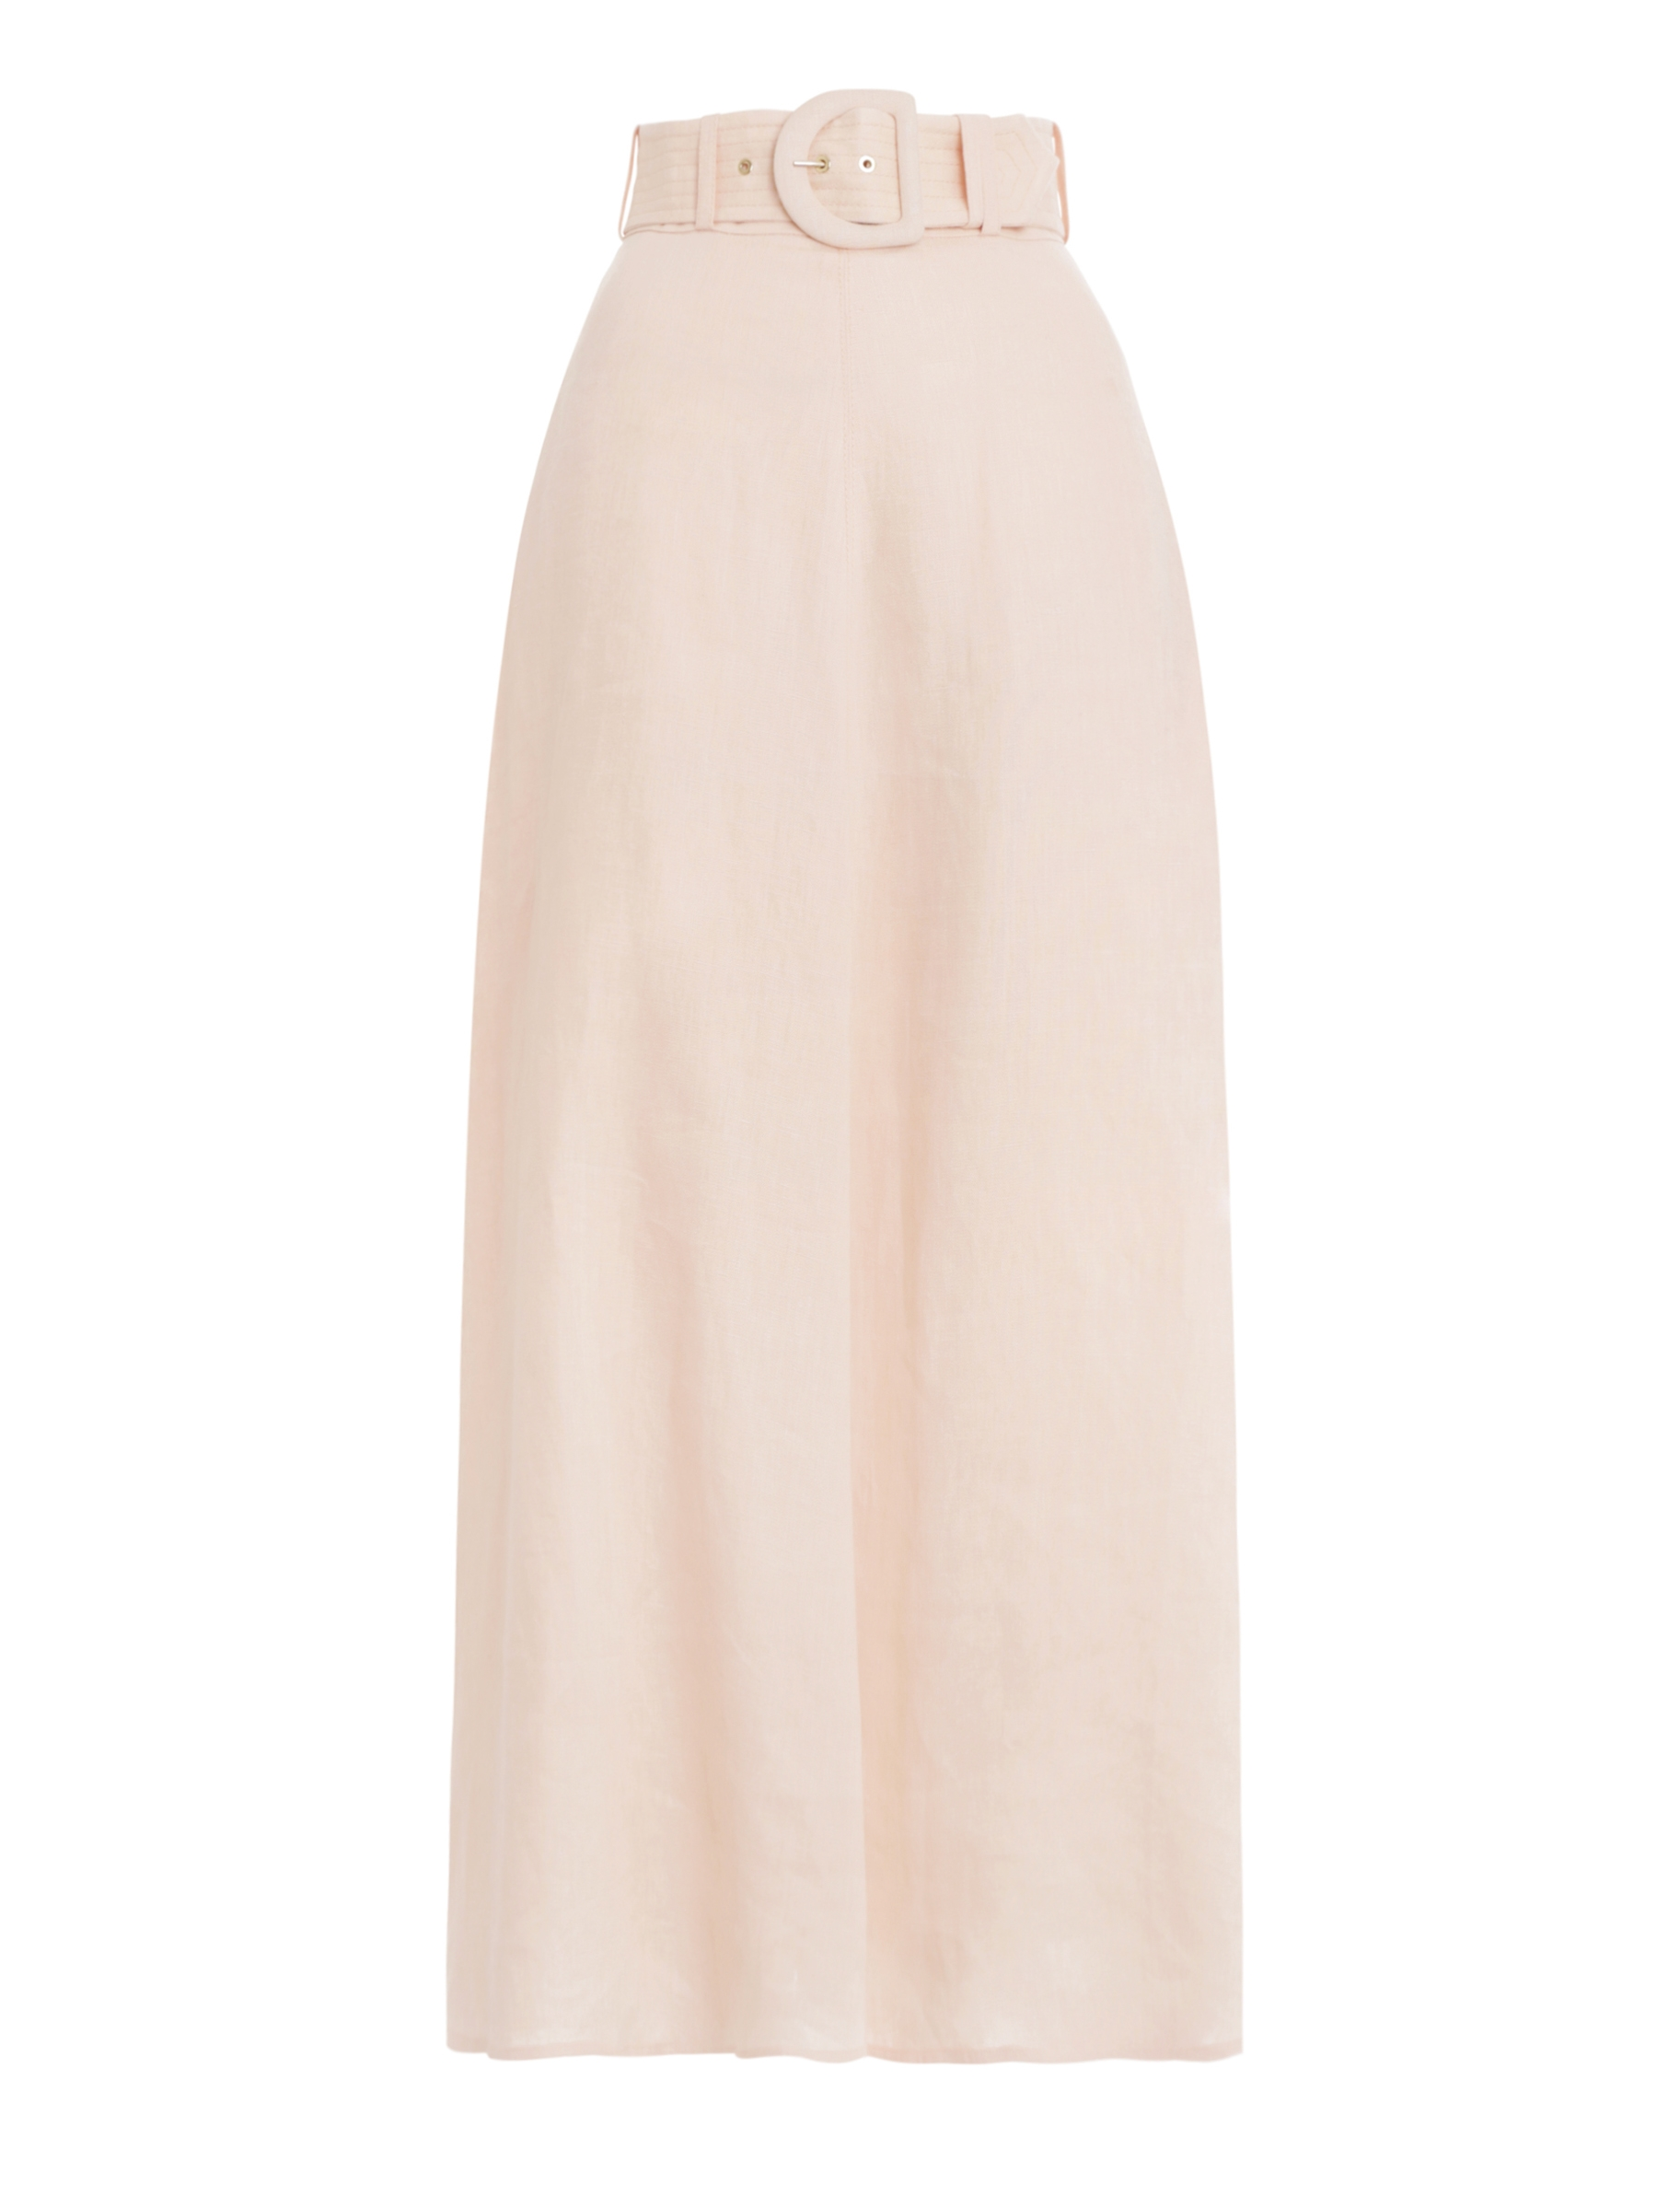 Super Eight Linen Skirt